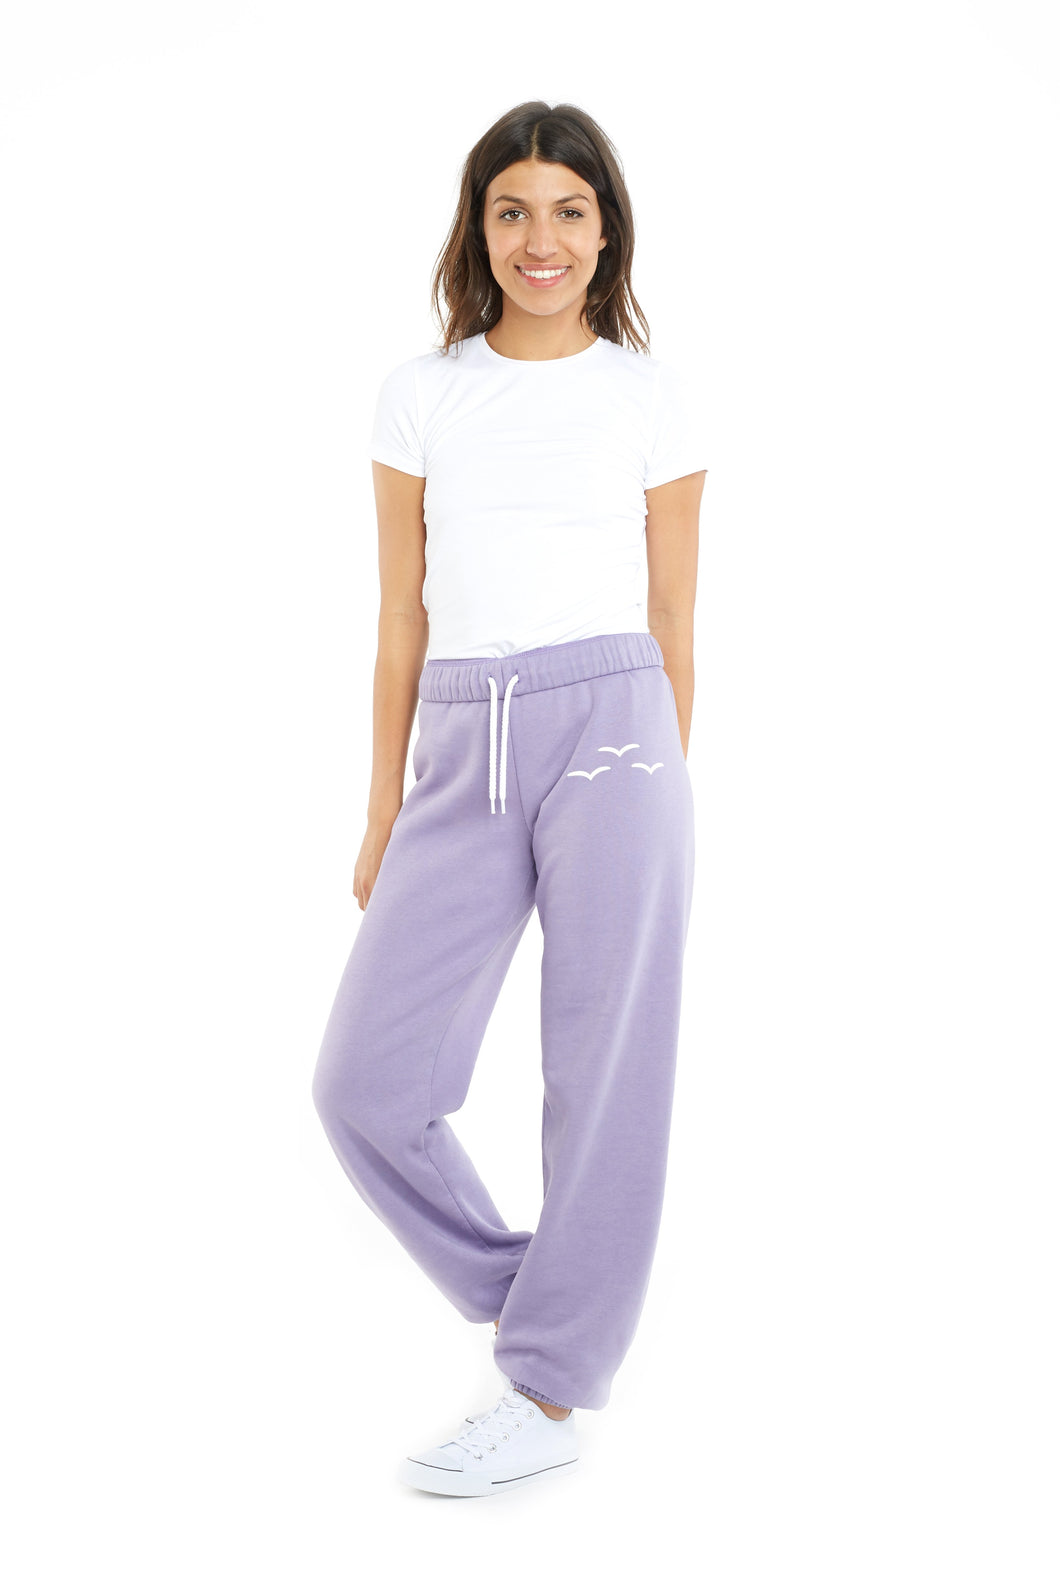 The Niki Original in lavender